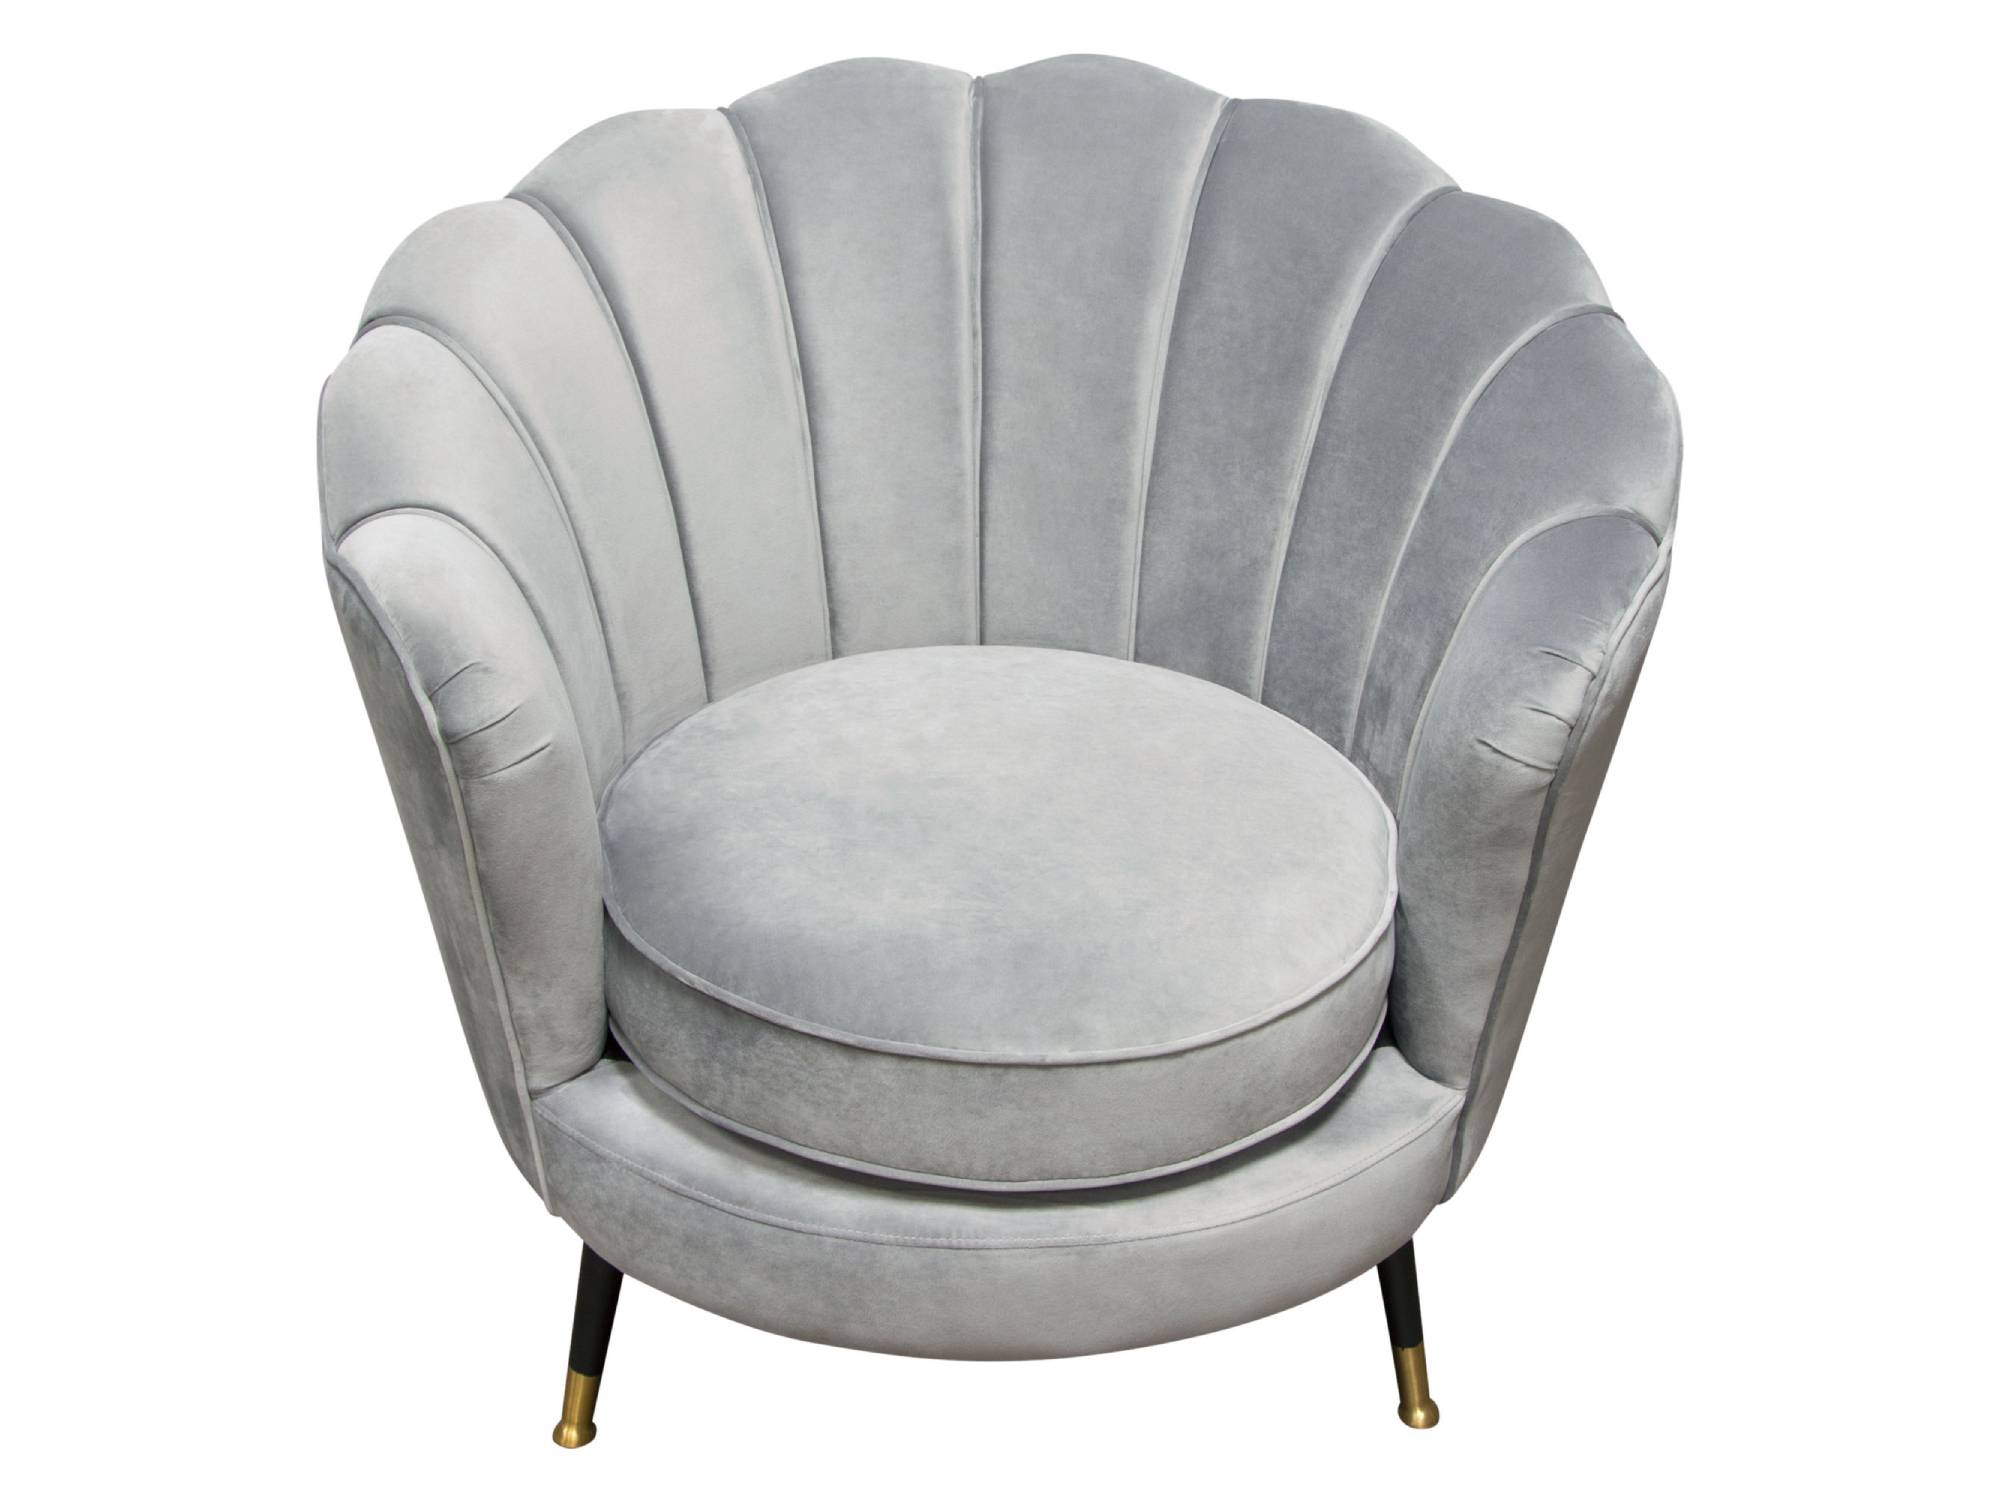 CELESTE ARMCHAIR - PLATINUM GREY